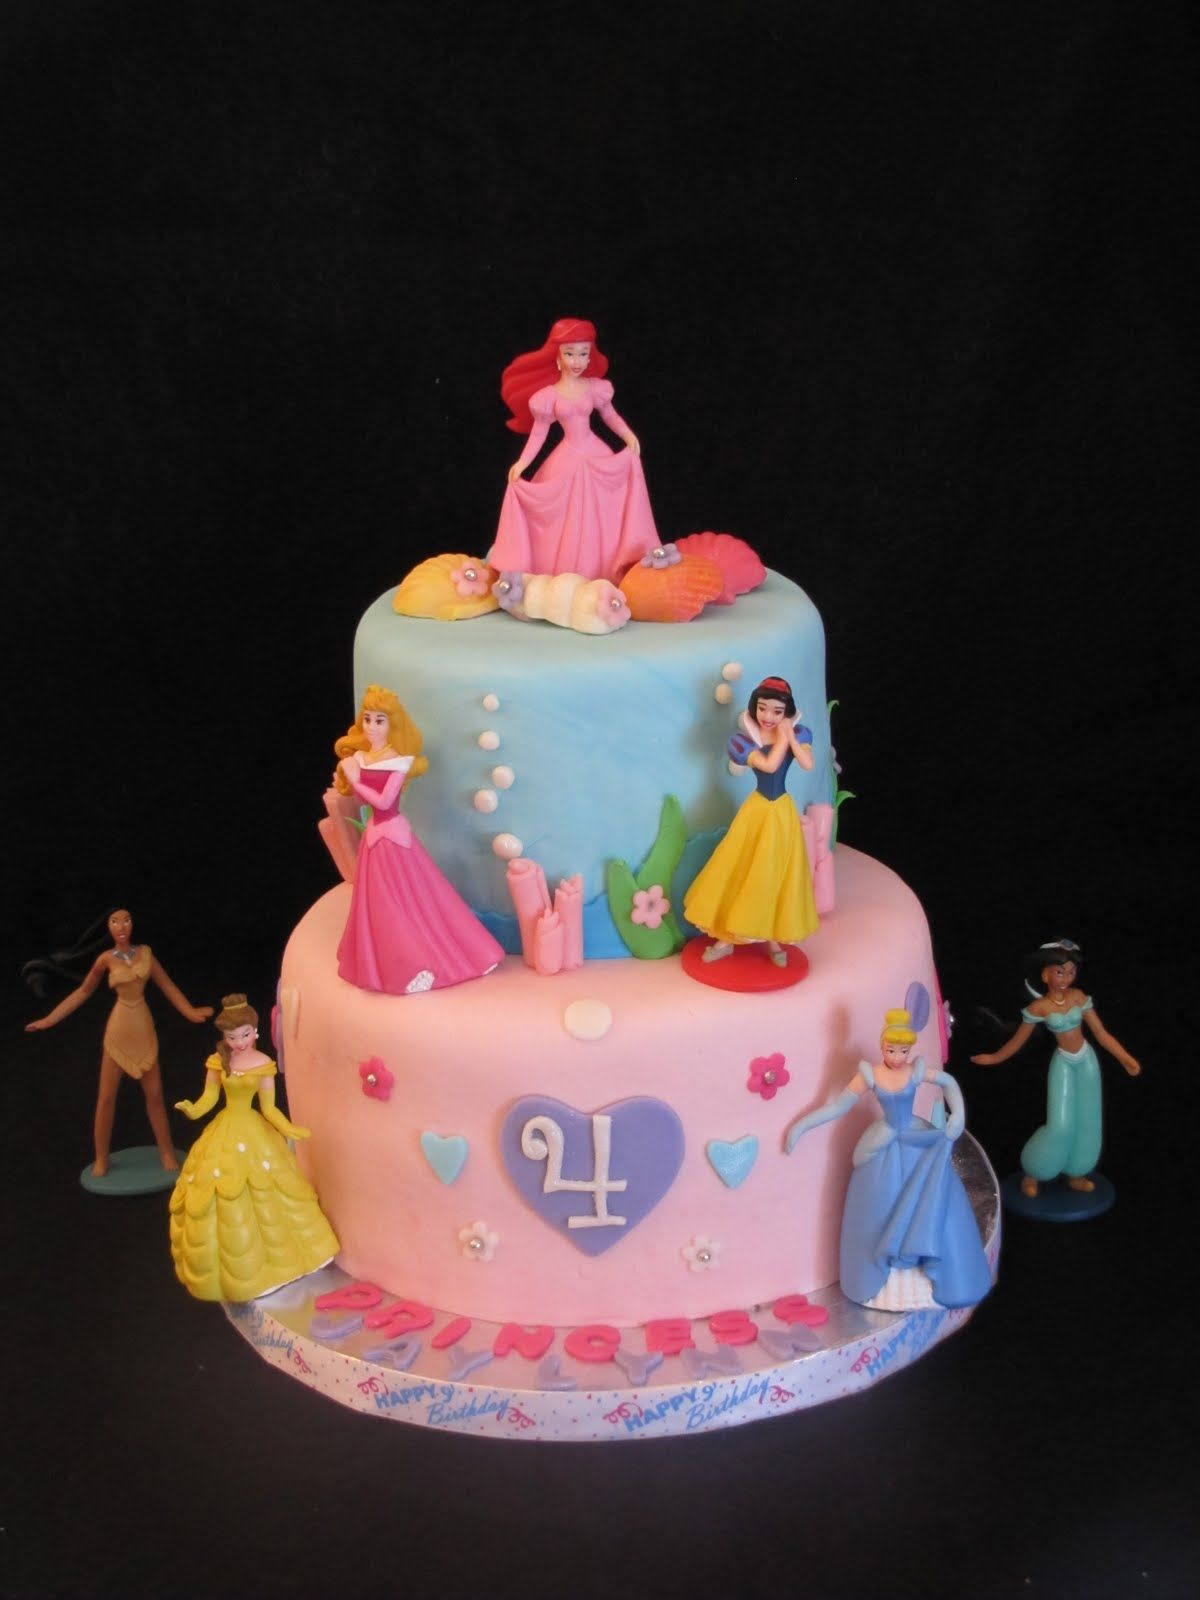 Disney Princess Cakecan We Do This Ashley Phipps